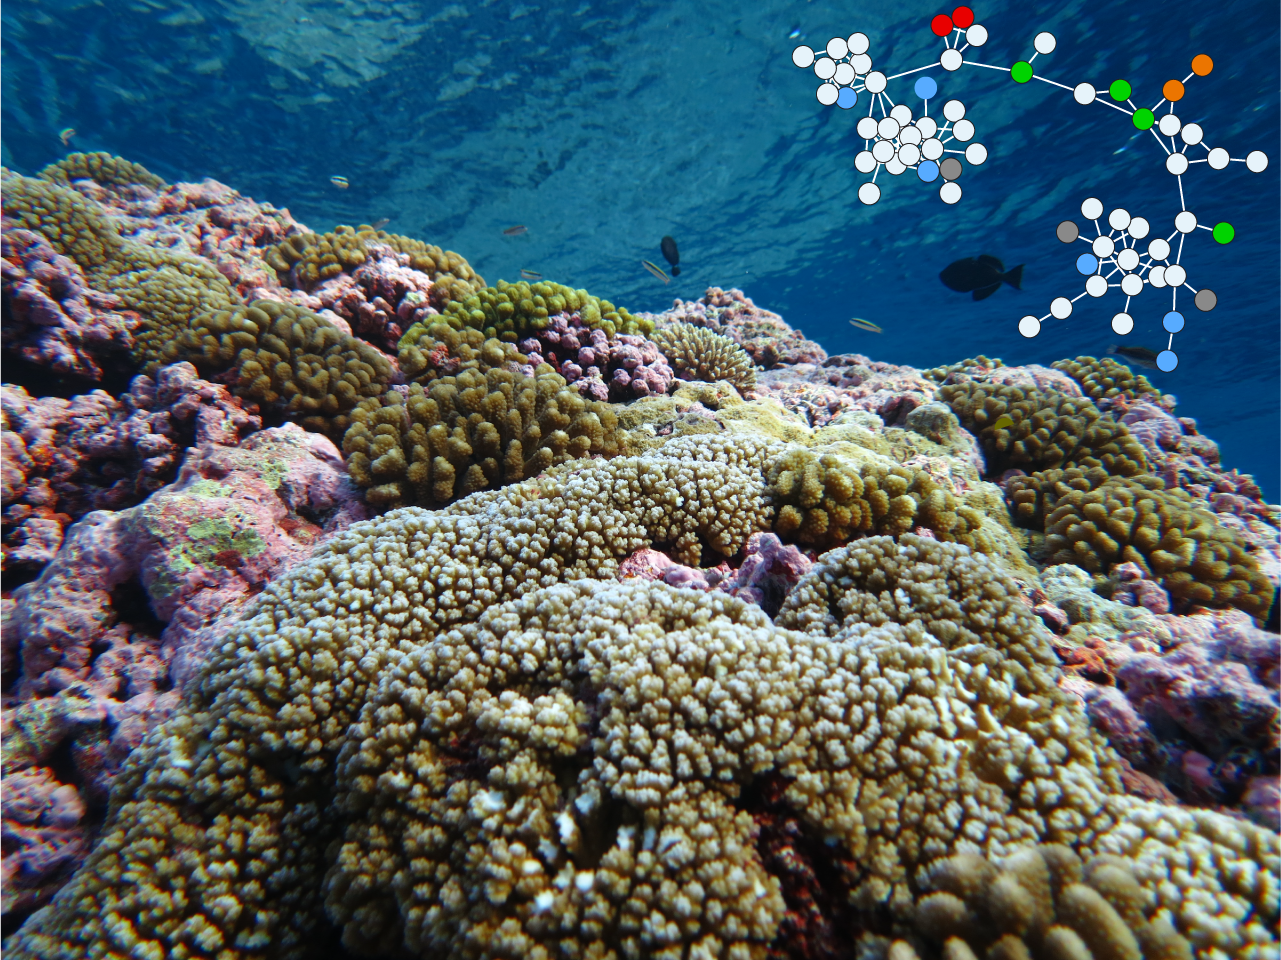 Coral reefs produce a wide diversity of small molecules that are involved in primary and secondary metabolism. This picture r